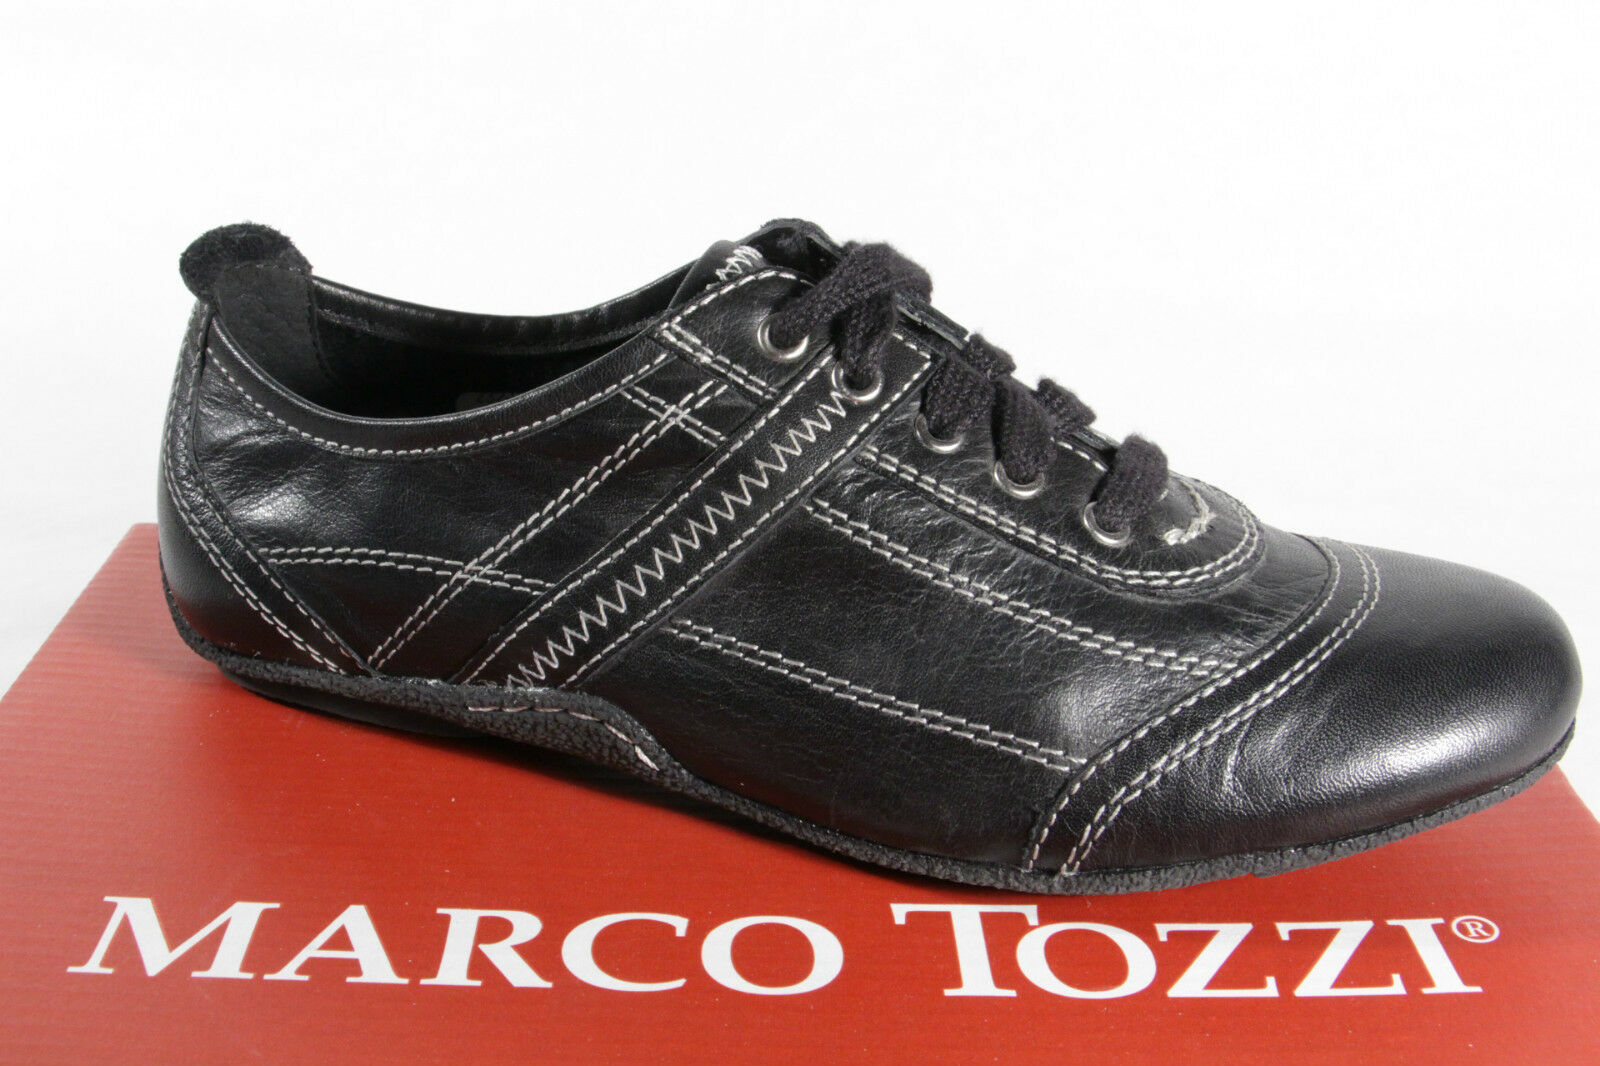 MARCO TOZZI TOZZI TOZZI Lace Up Sneakers Low shoes Genuine Leather NEW 6b5001